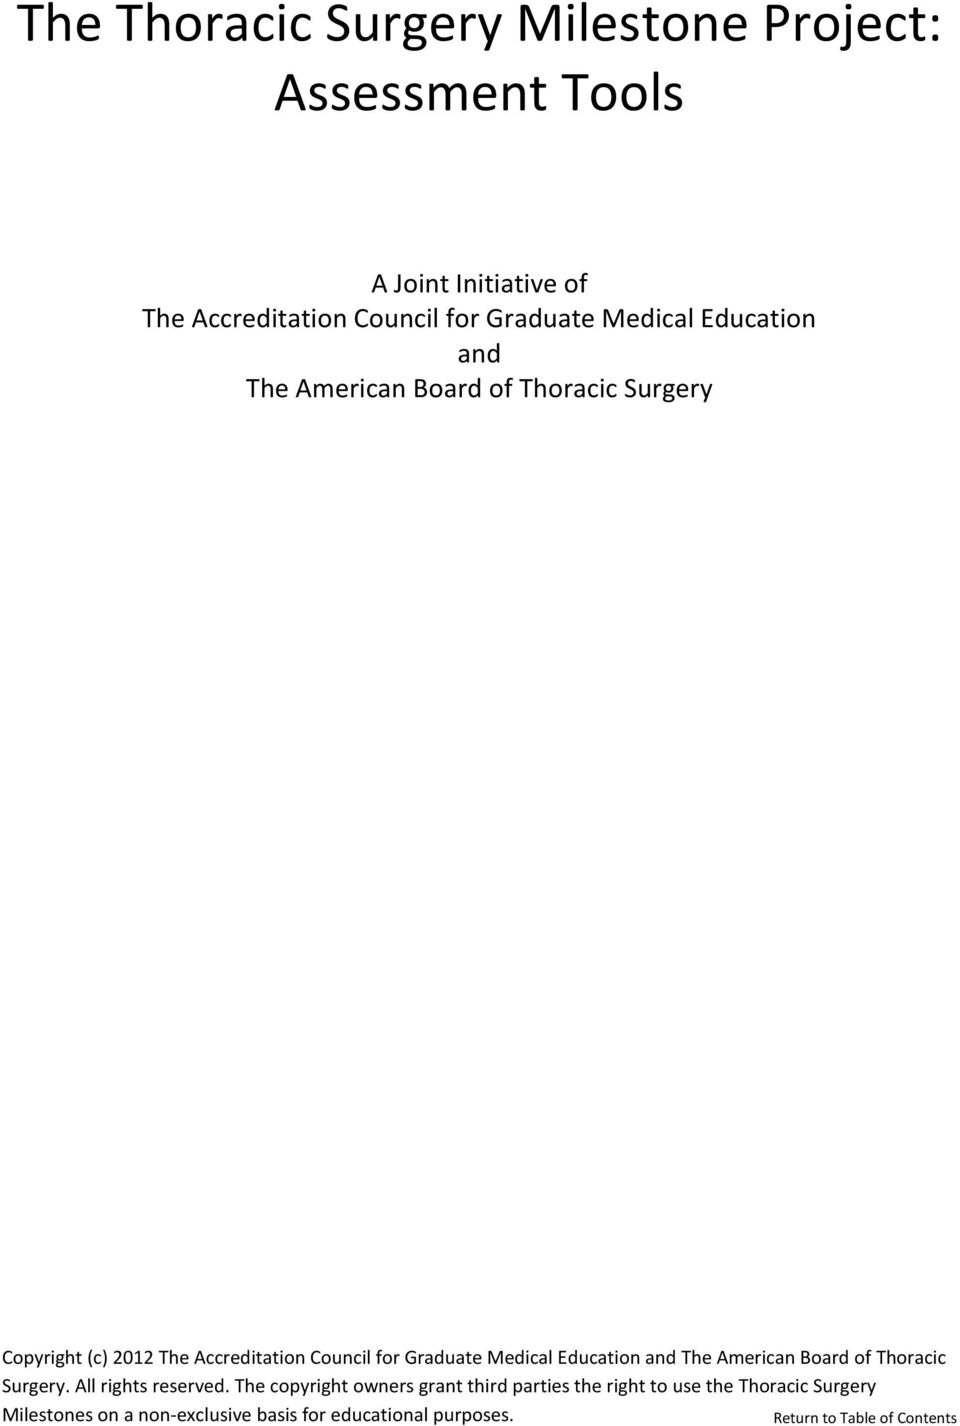 for Graduate Medical Education and The American Board of Thoracic Surgery. All rights reserved.